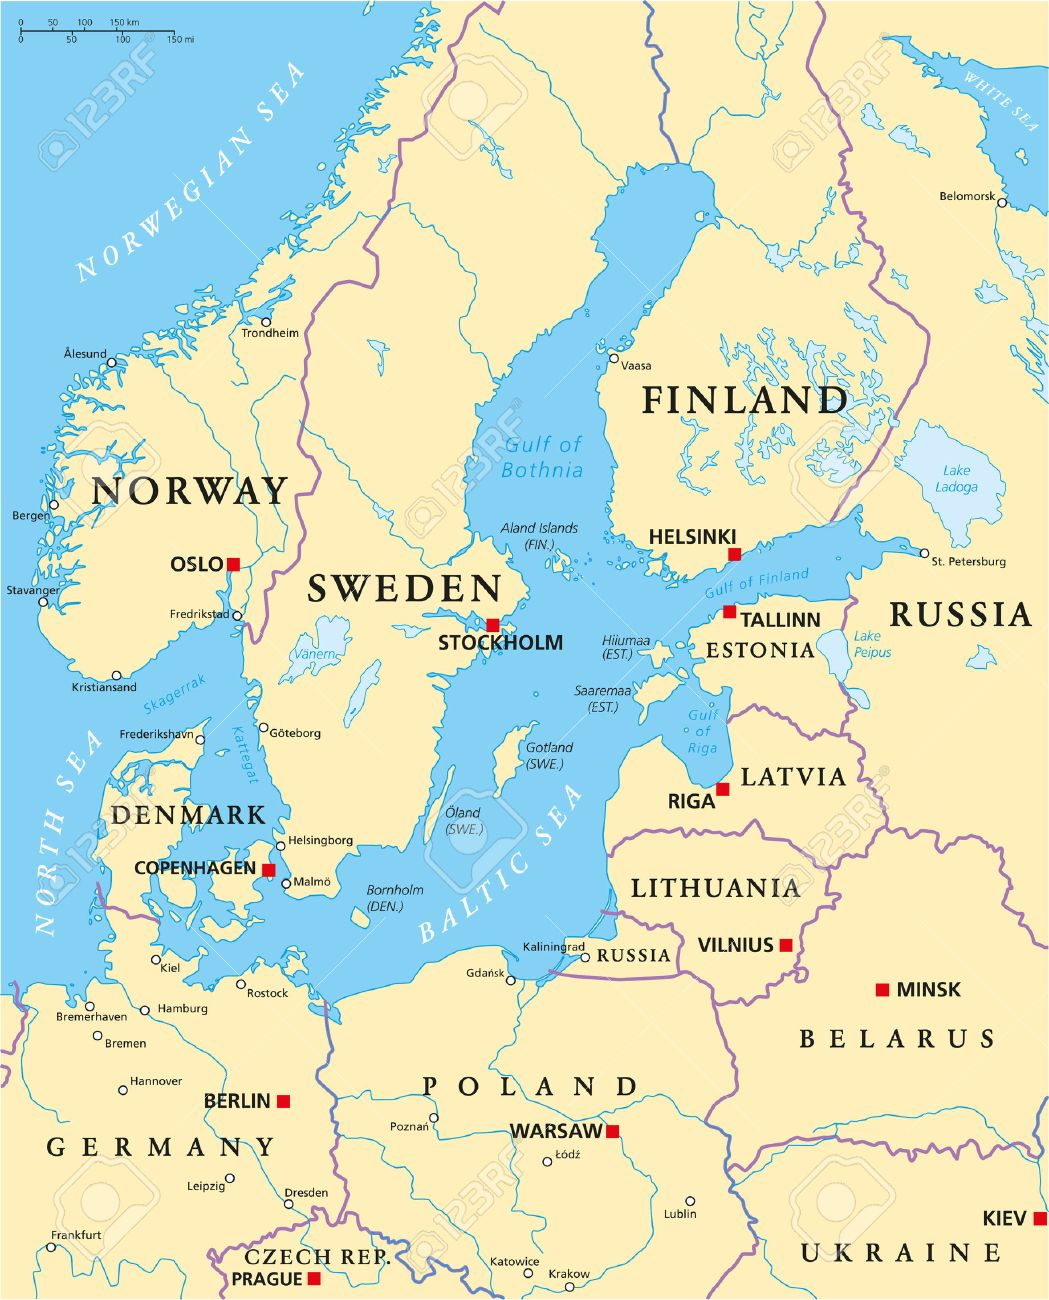 Baltic Sea Area Political Map With Capitals, National Borders ...